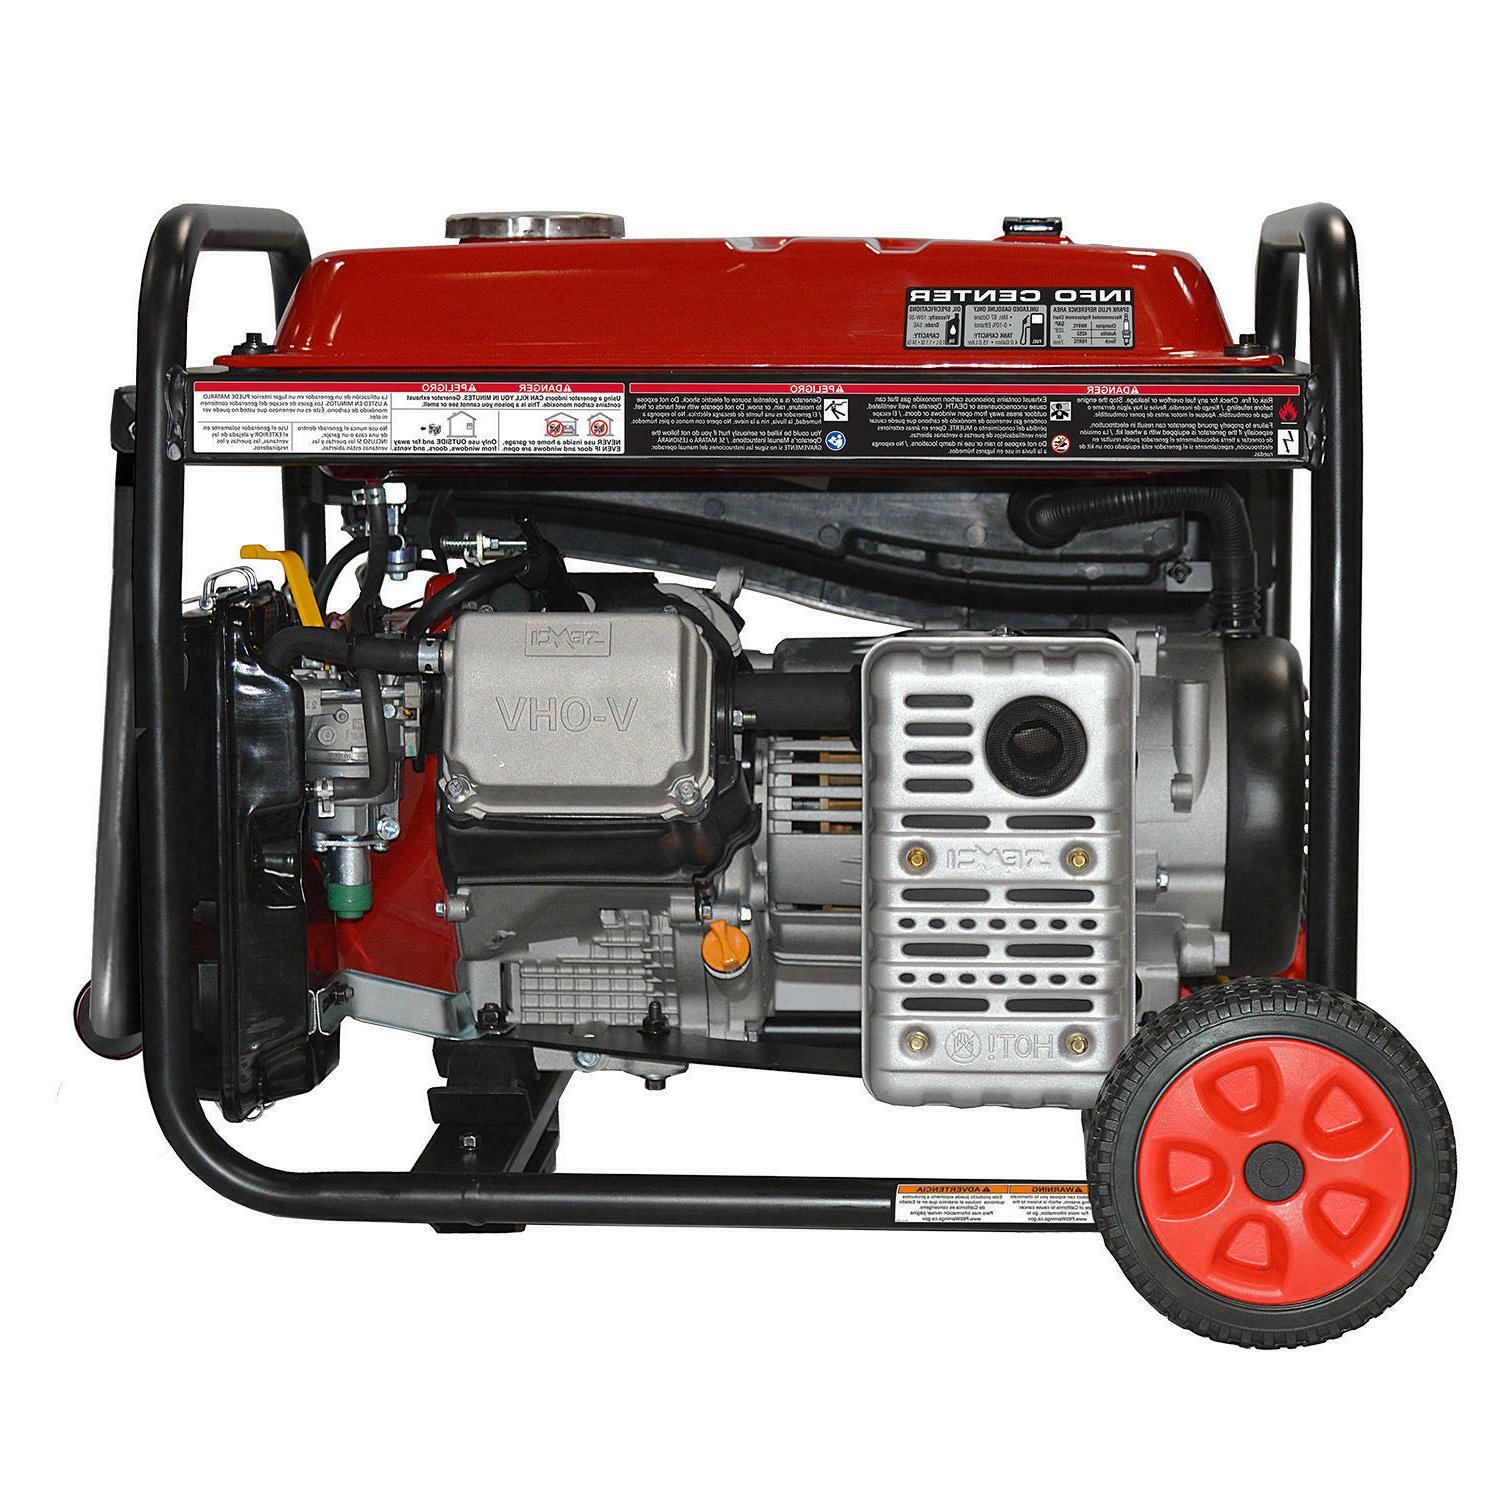 A-iPower Portable Generator with Wheel Kit